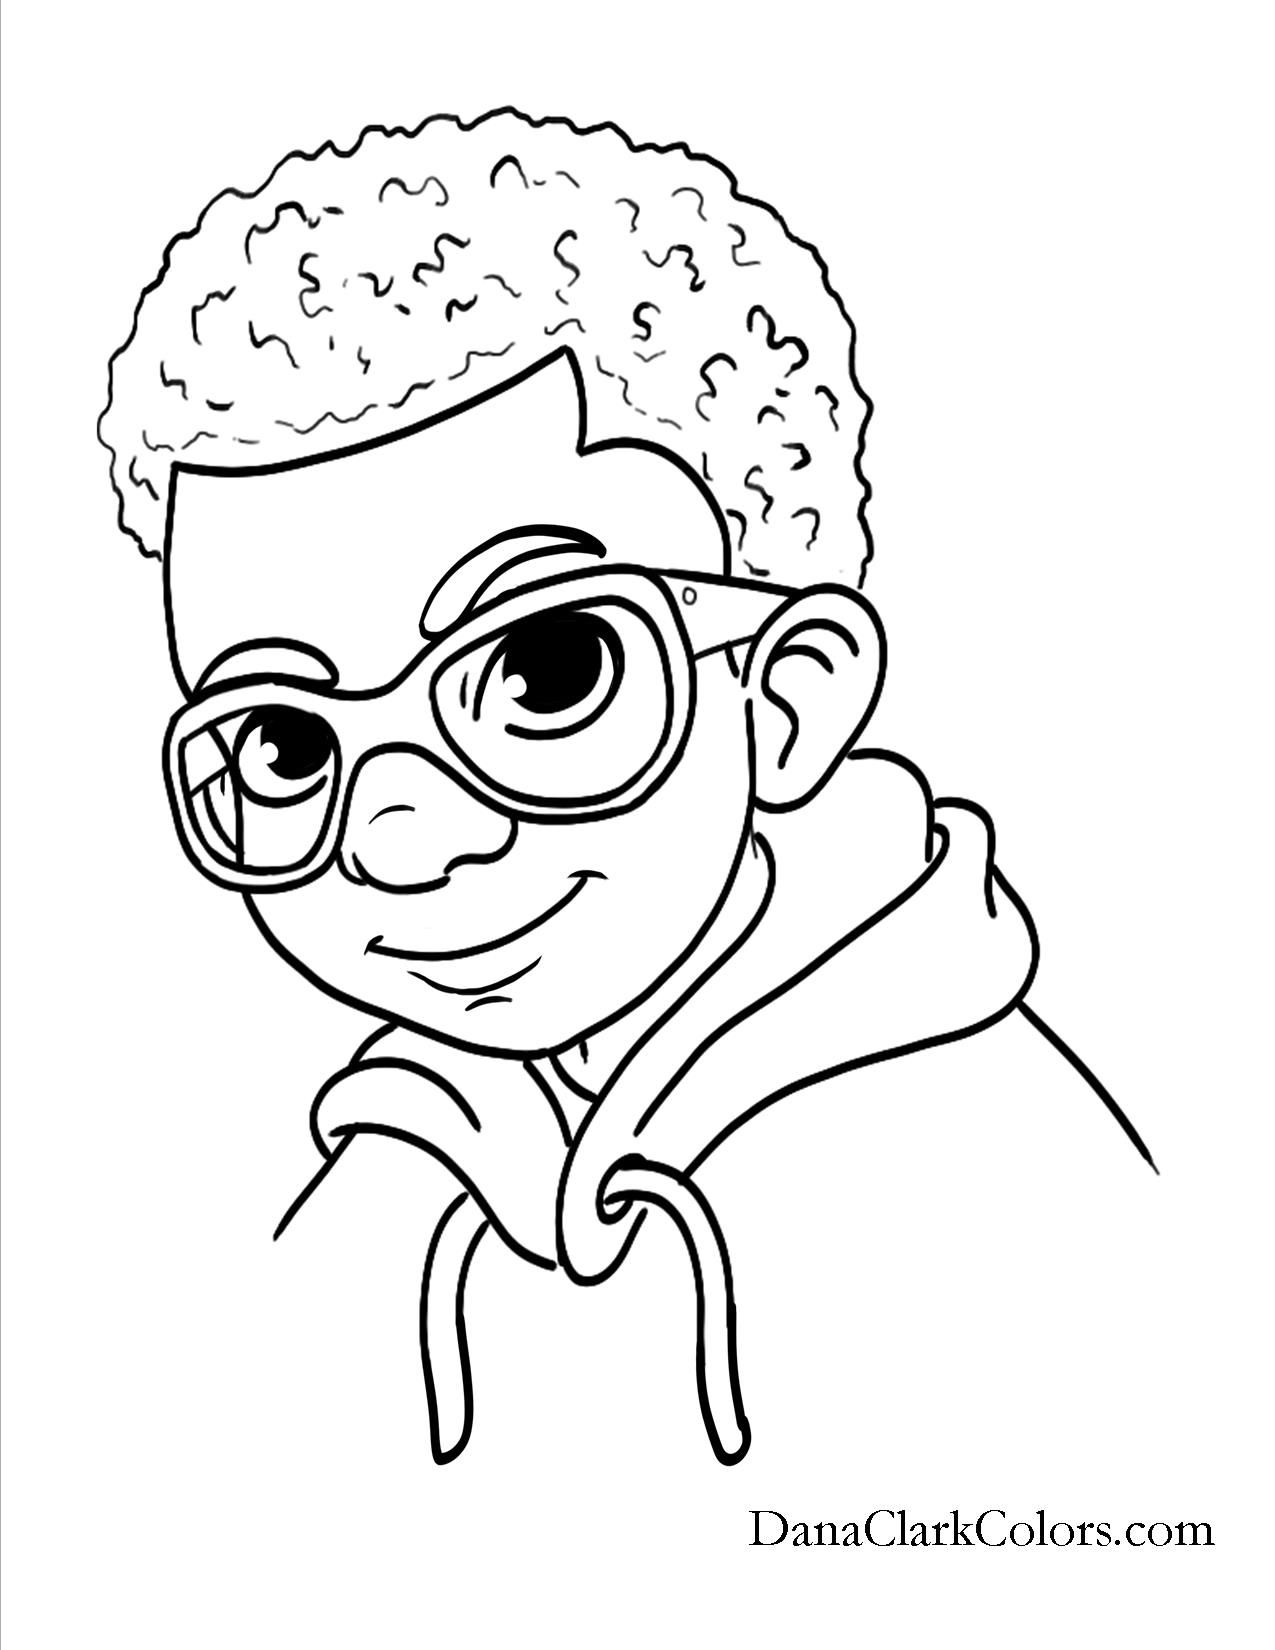 coloring pages boys African American, Black, African, boys and girls of color   great  coloring pages boys